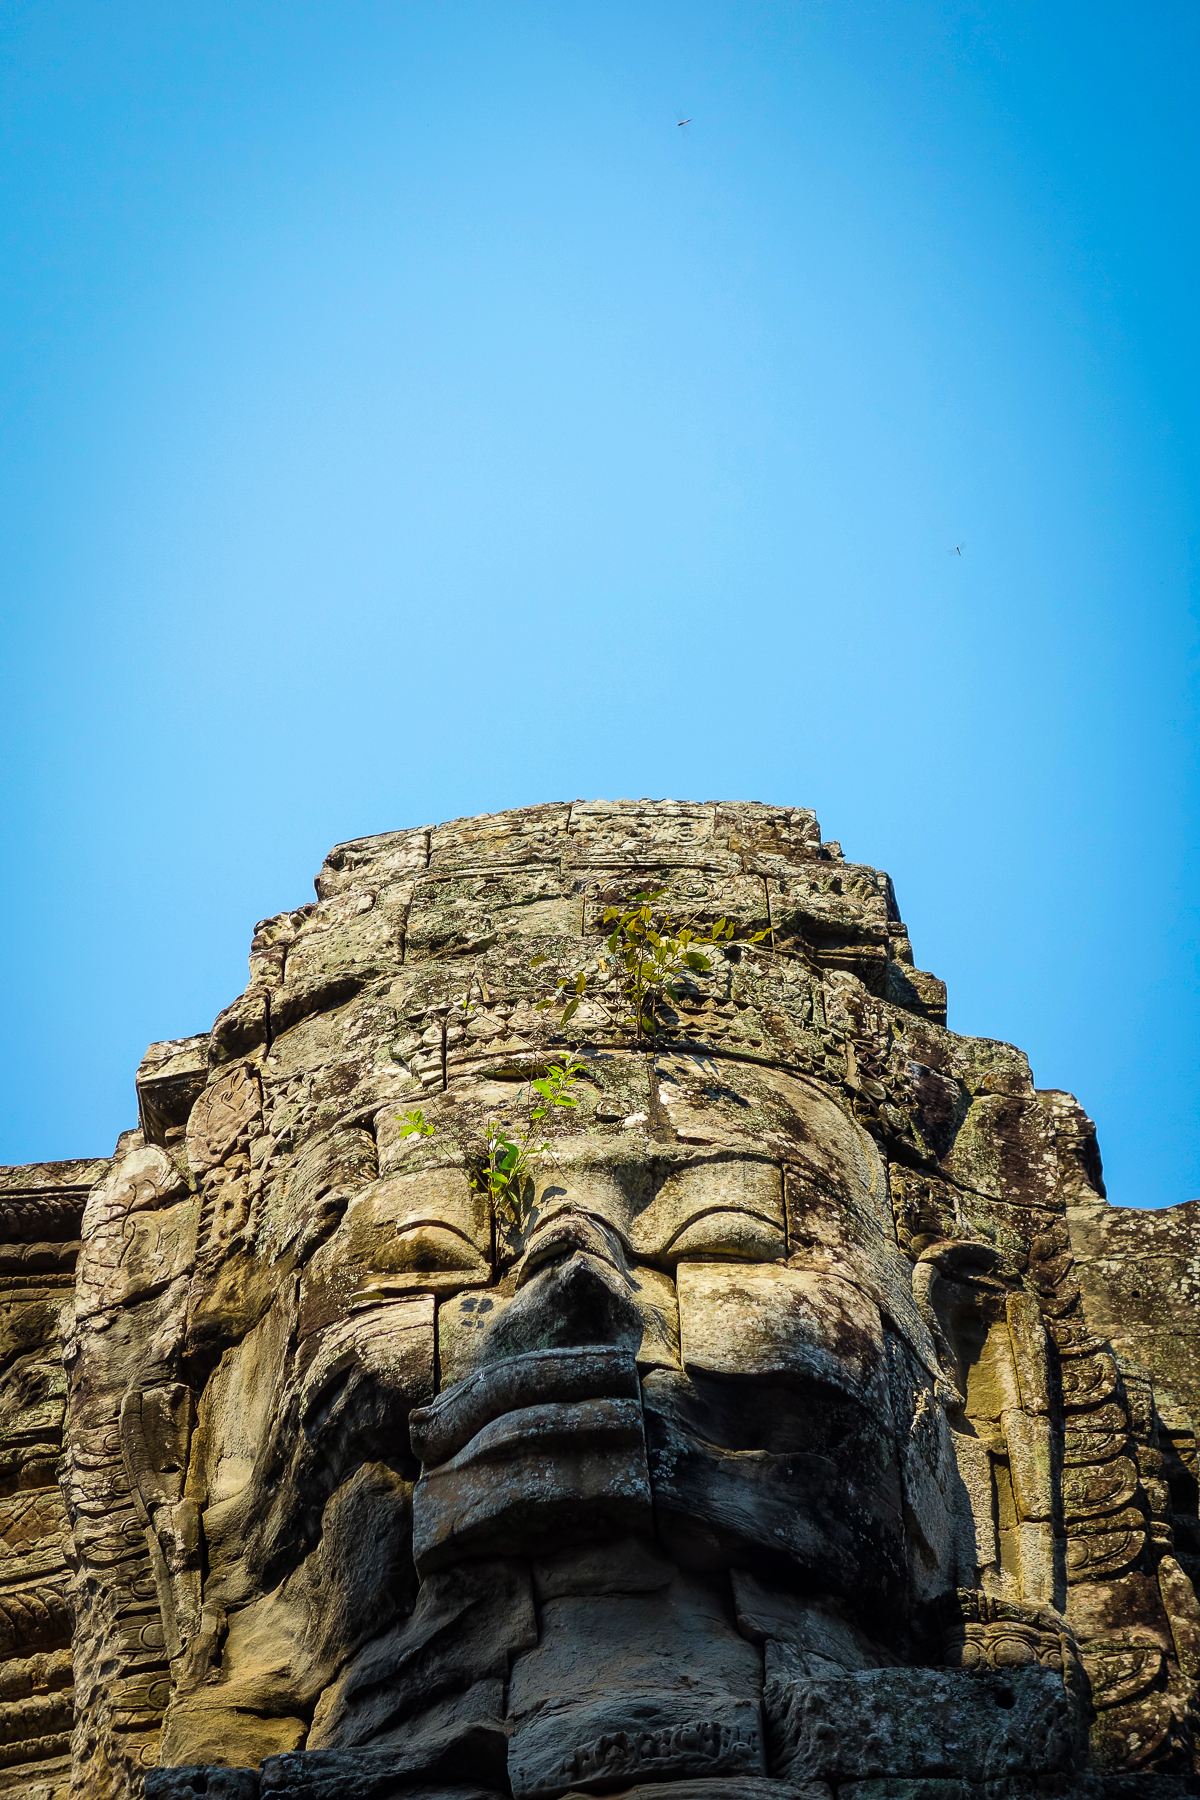 Khmer Smile in Bayon